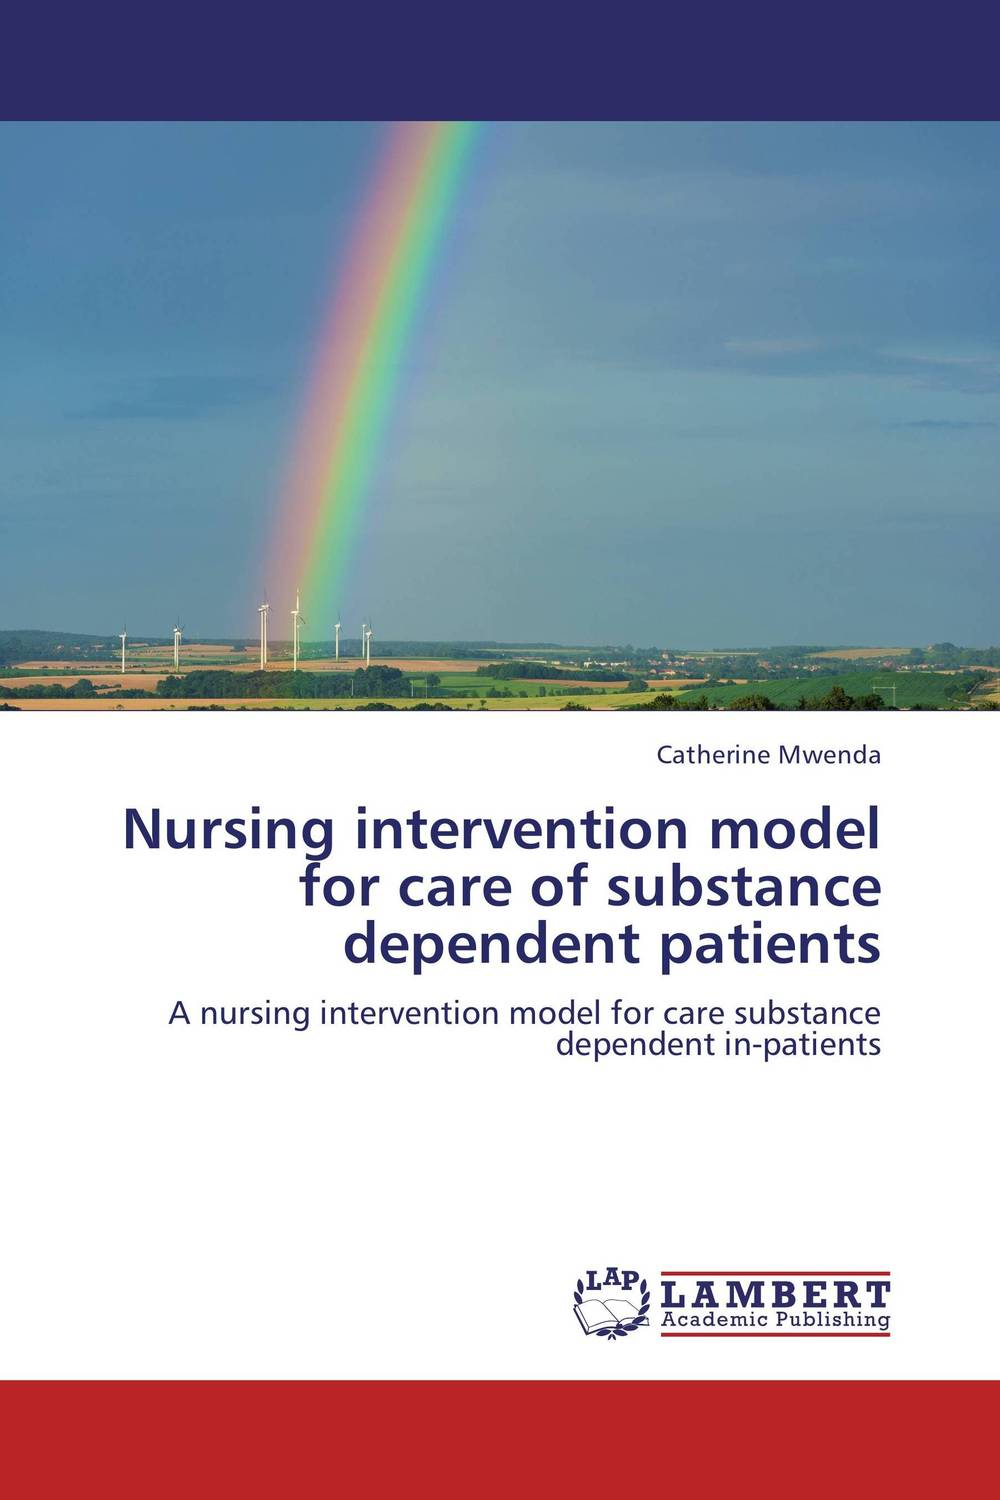 Nursing intervention model for care of substance dependent patients